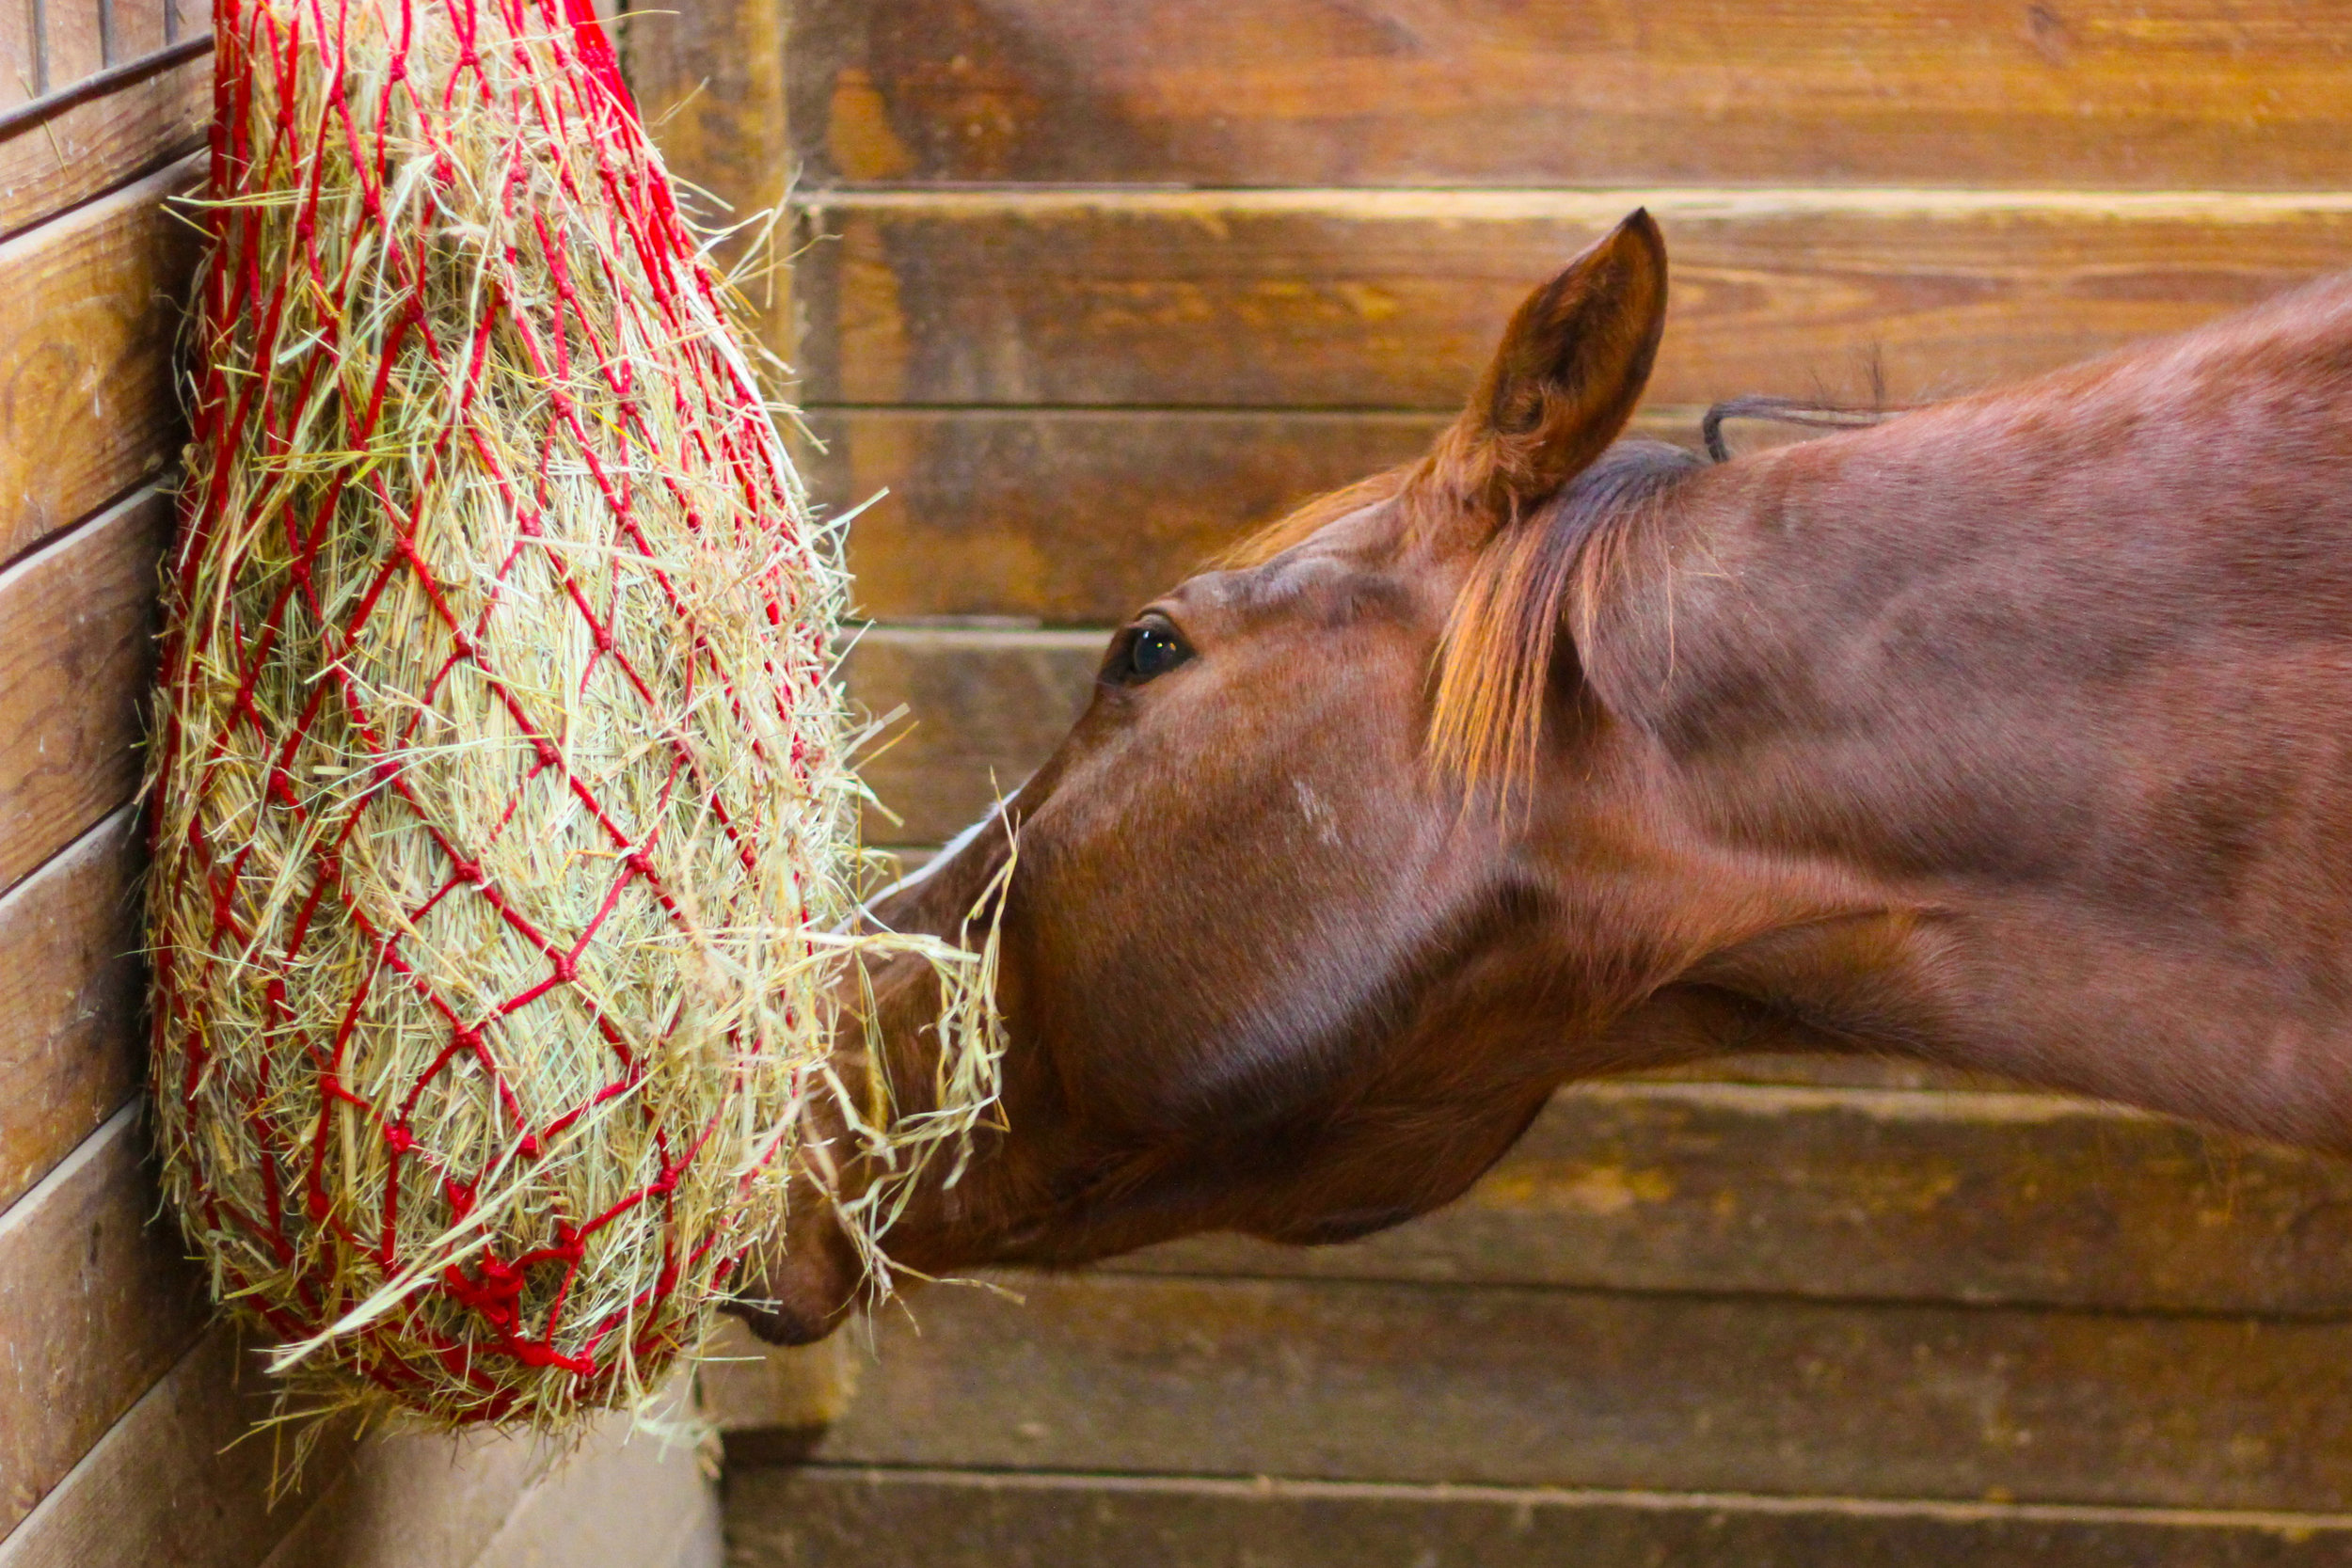 Sometimes your hay has more sugar than you might think